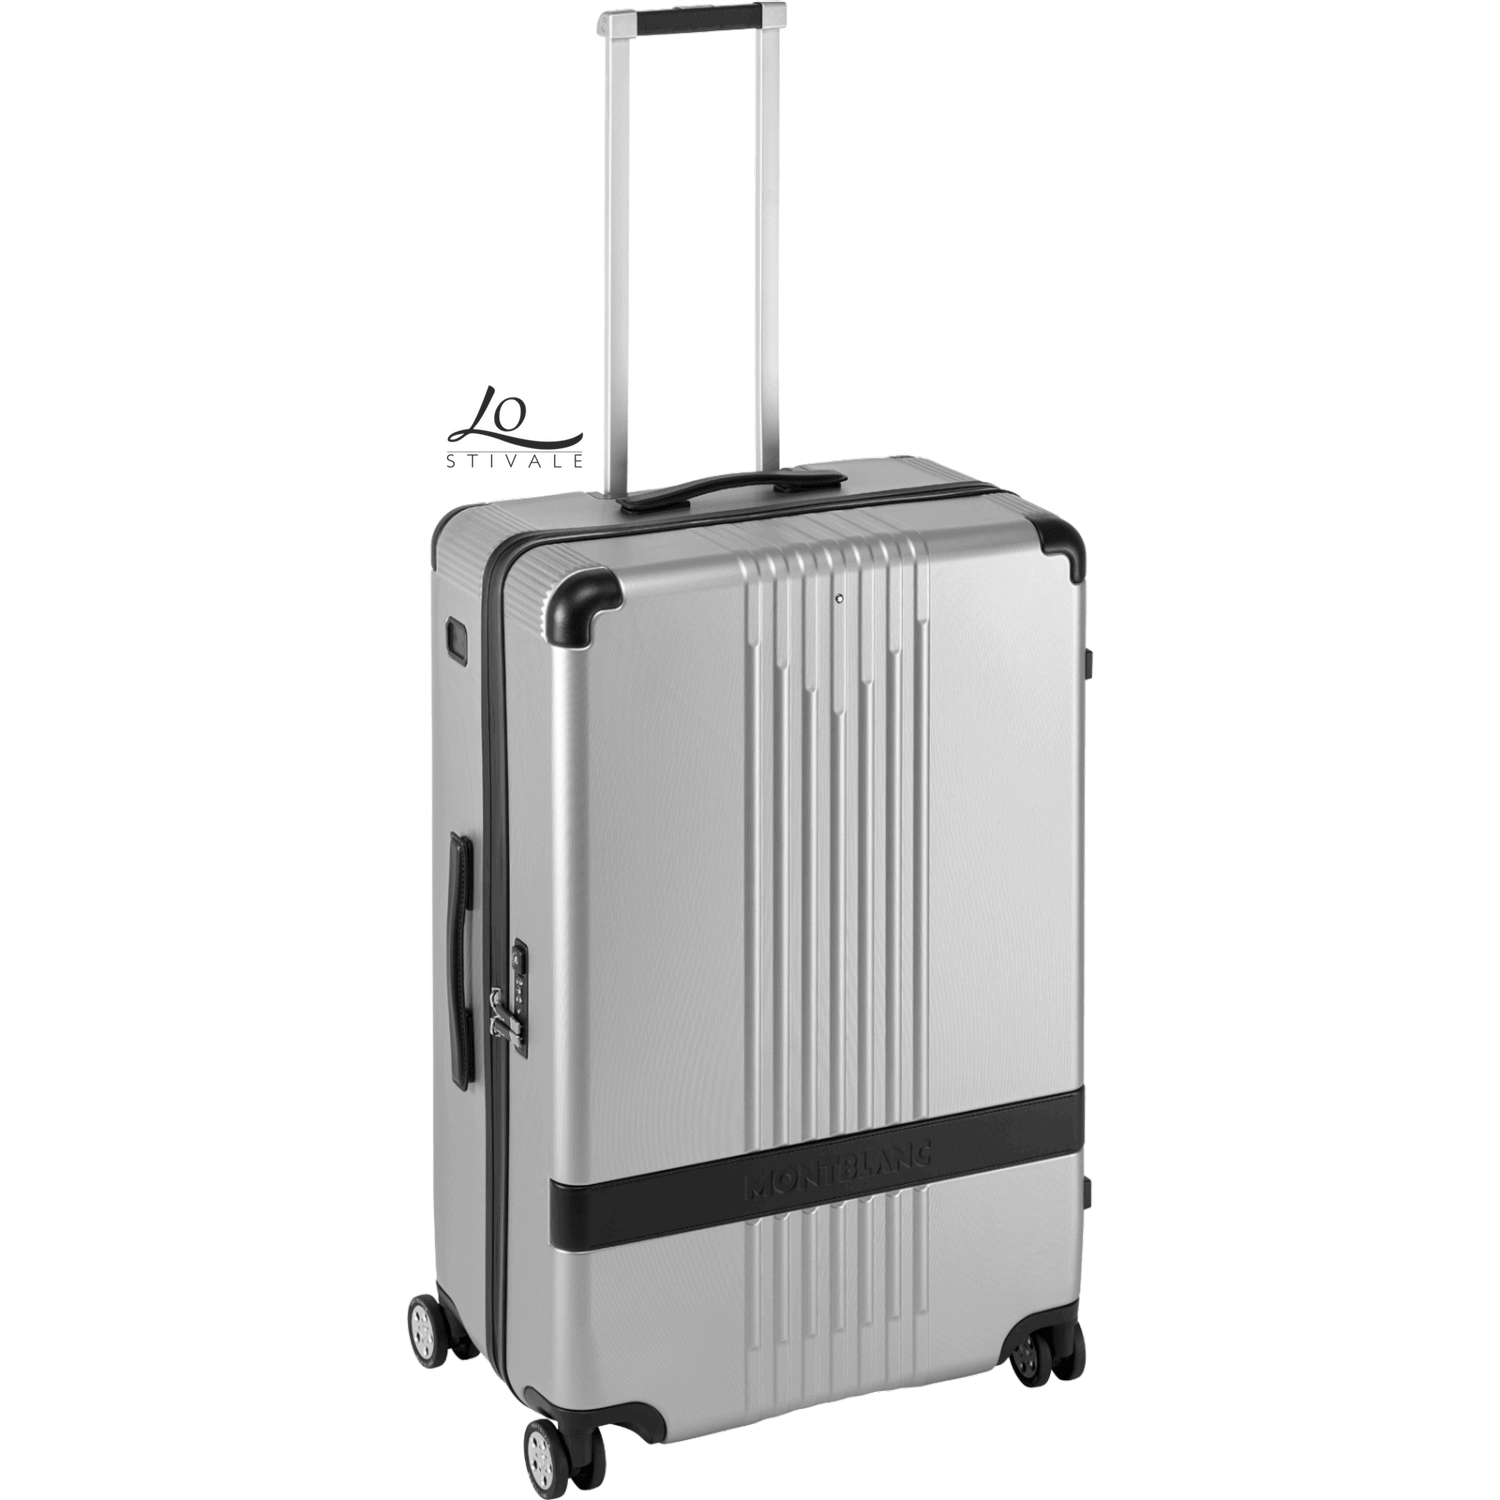 124155.lostivale.montblanc.trolley. copia (1) (1) (1)